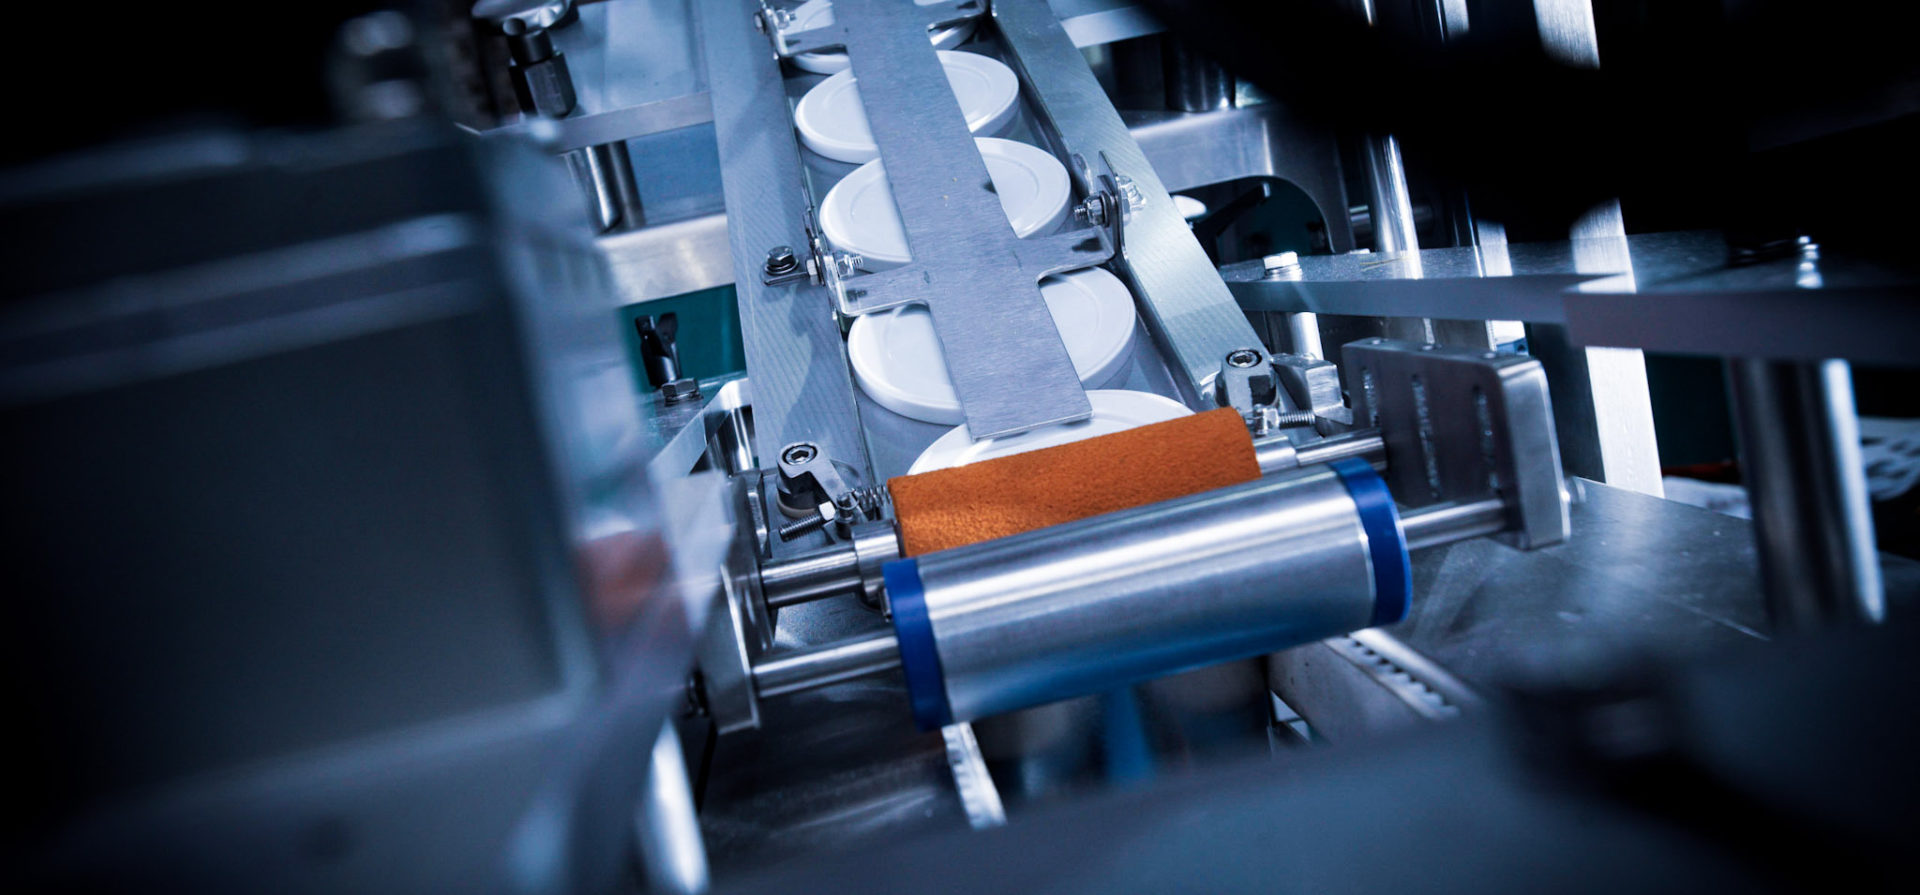 Lidding - Automated Sorting Systems | Euroflow Automation Ltd